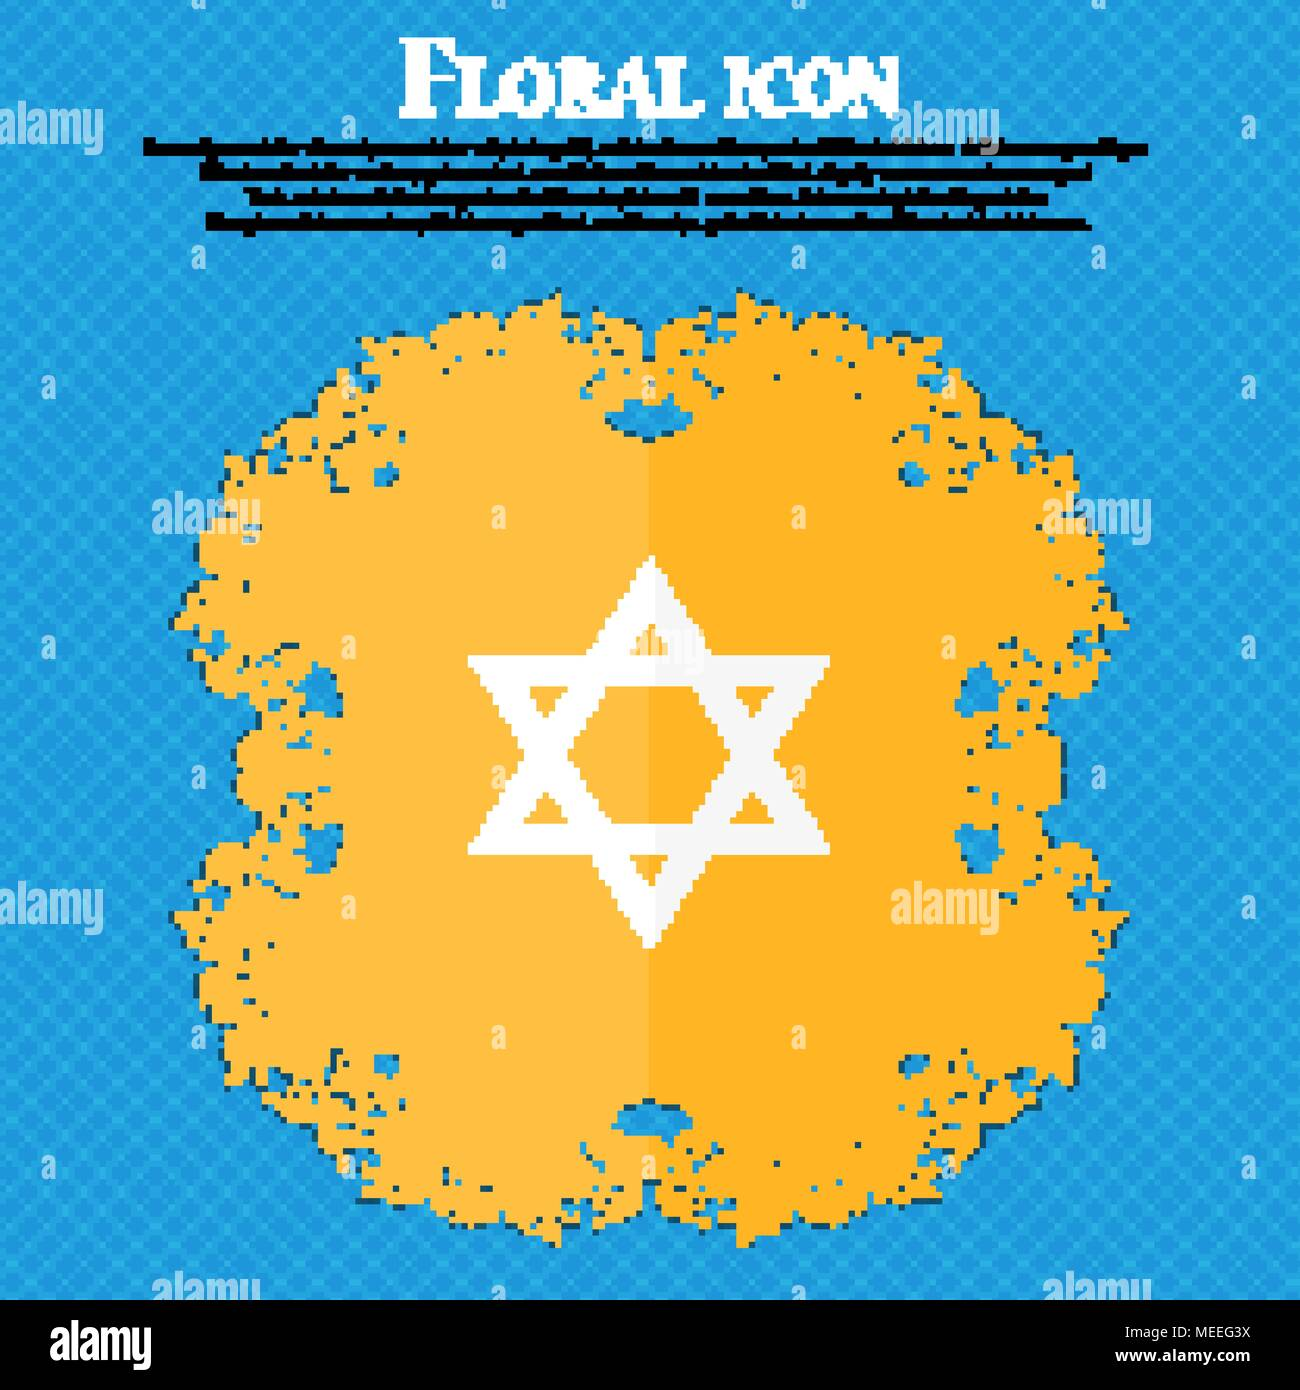 pentagram icon. Floral flat design on a blue abstract background with place for your text. Vector illustration - Stock Vector